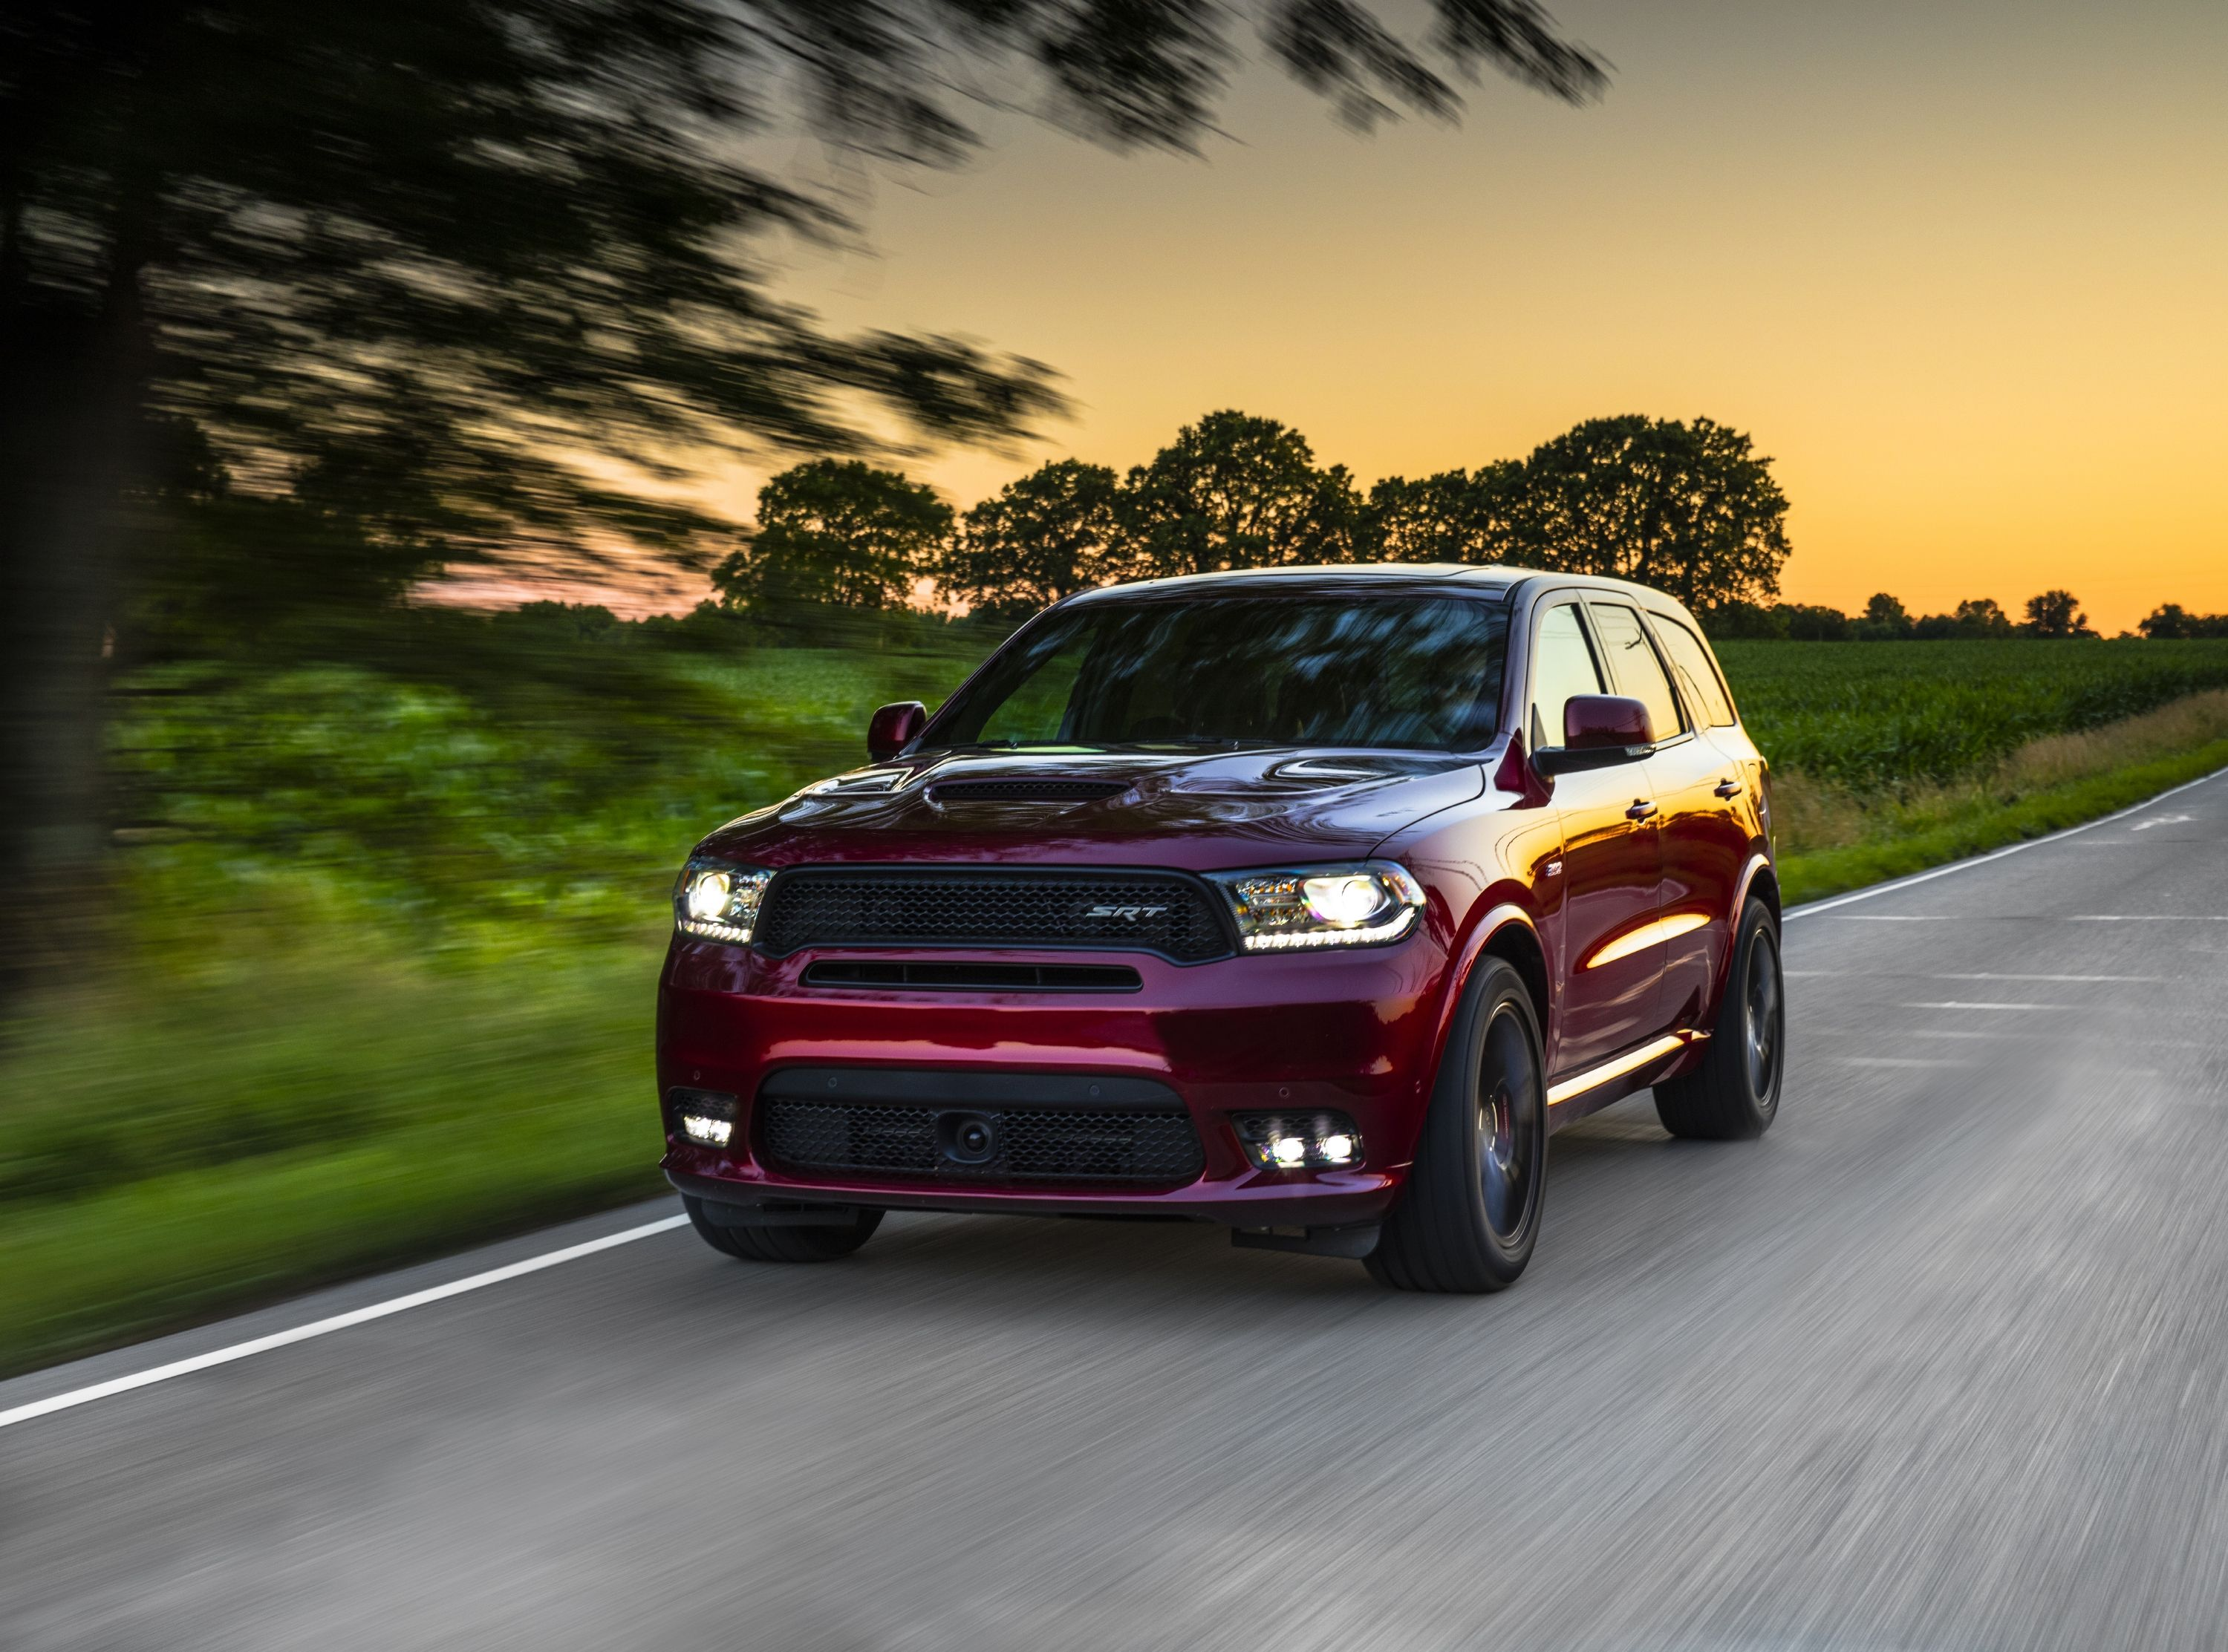 2020 Dodge Durango Srt Research New